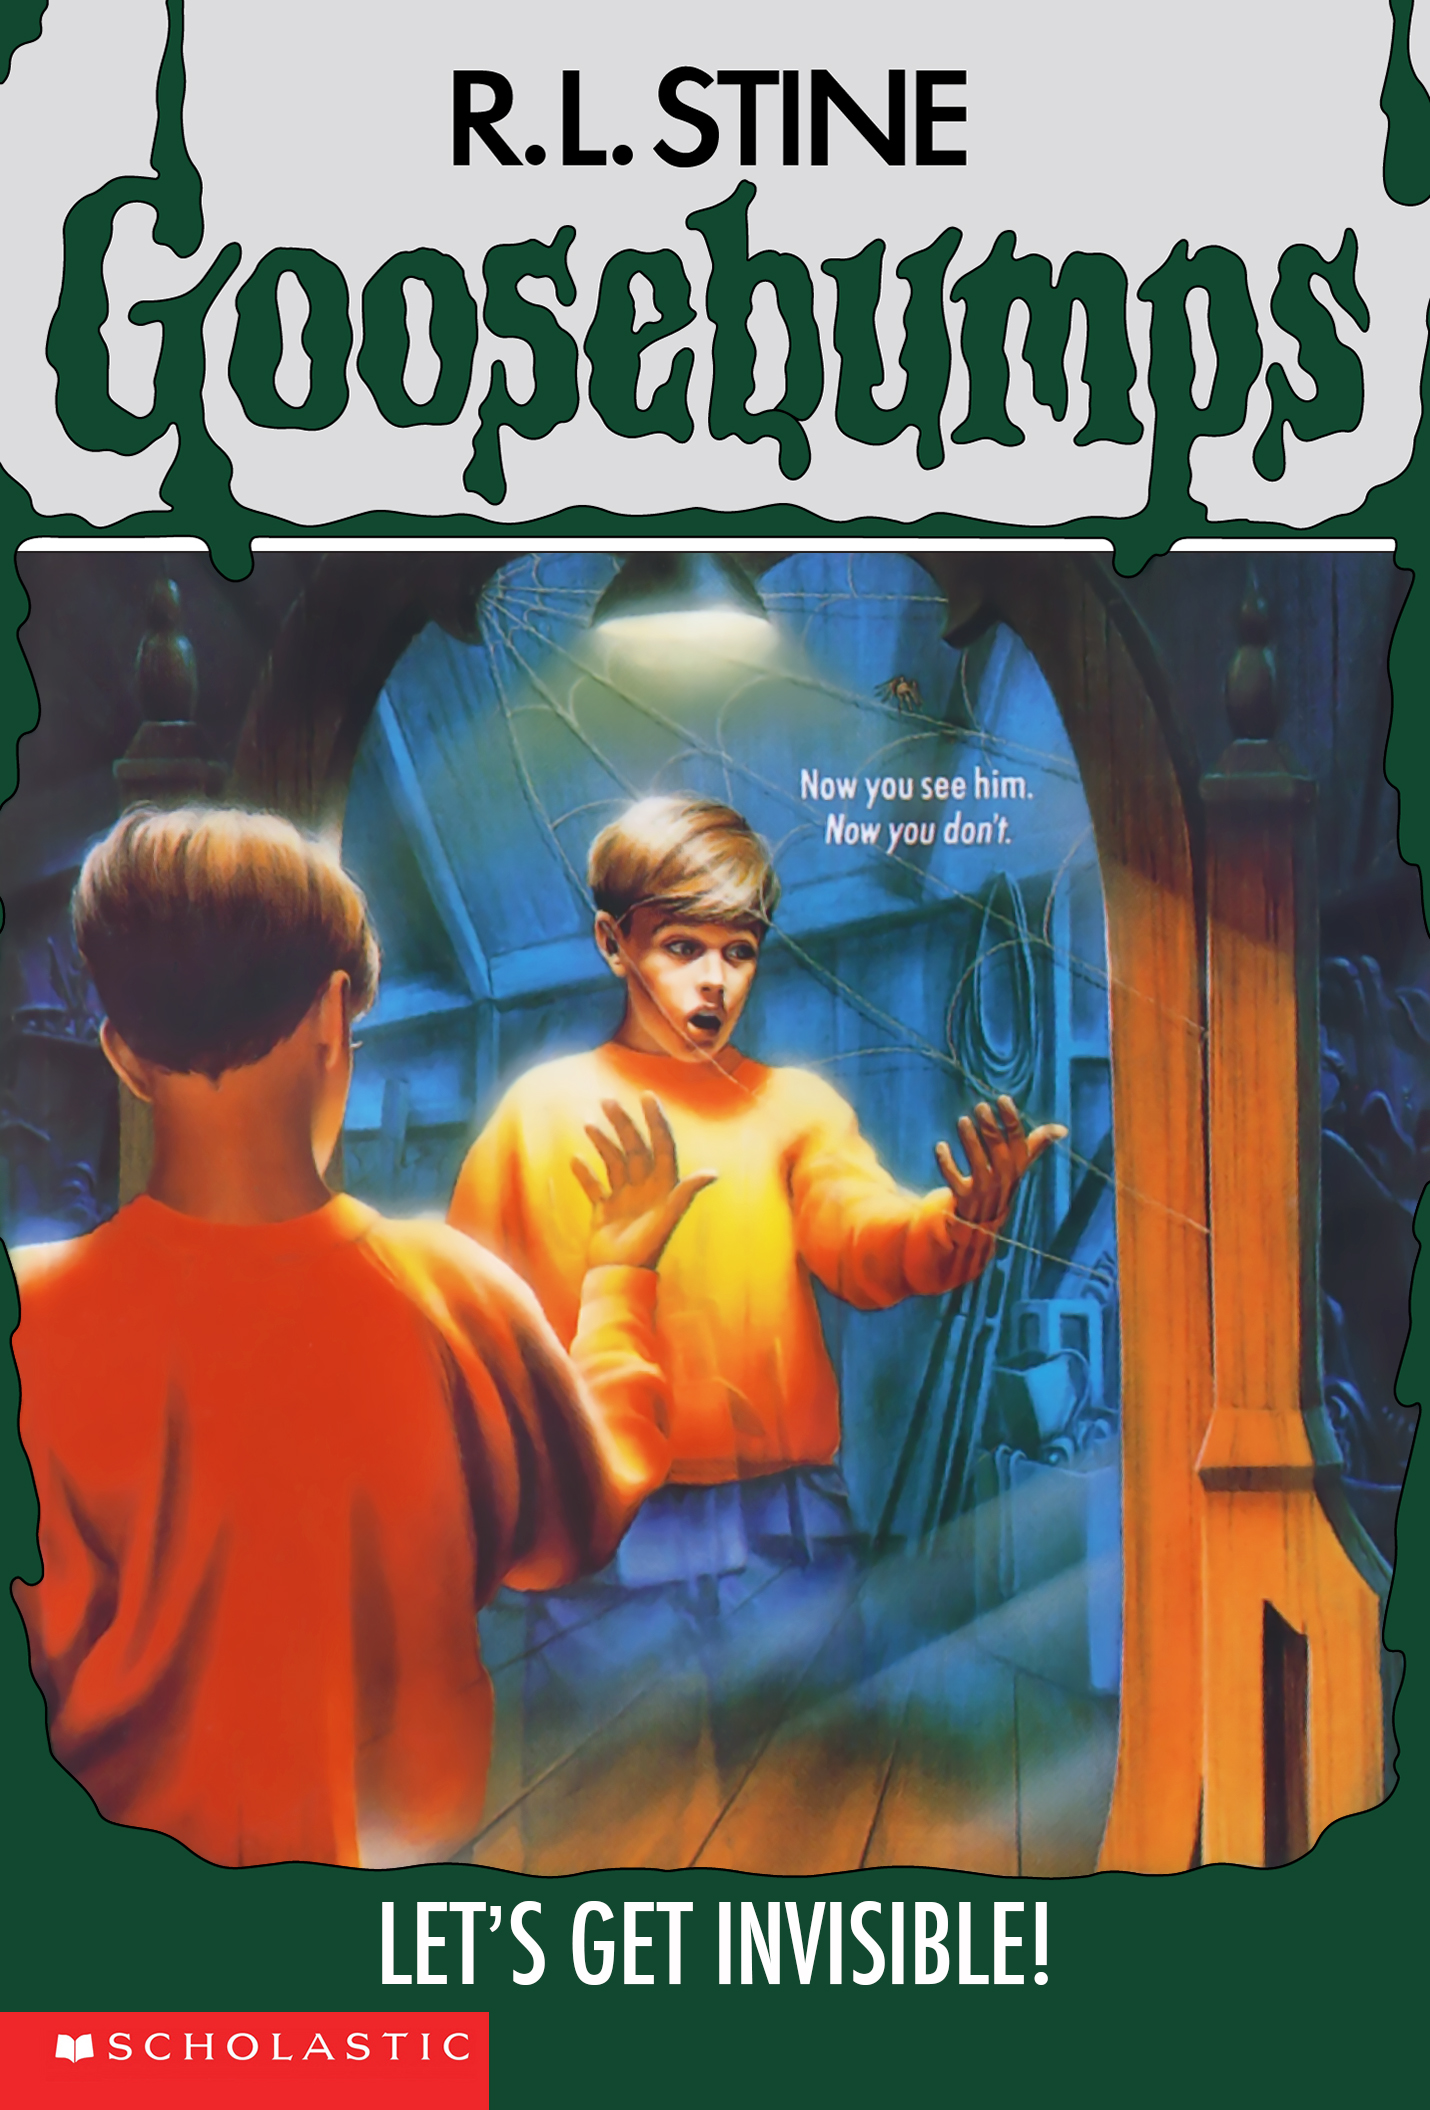 Let's Get Invisible! | Goosebumps Wiki | FANDOM powered by Wikia